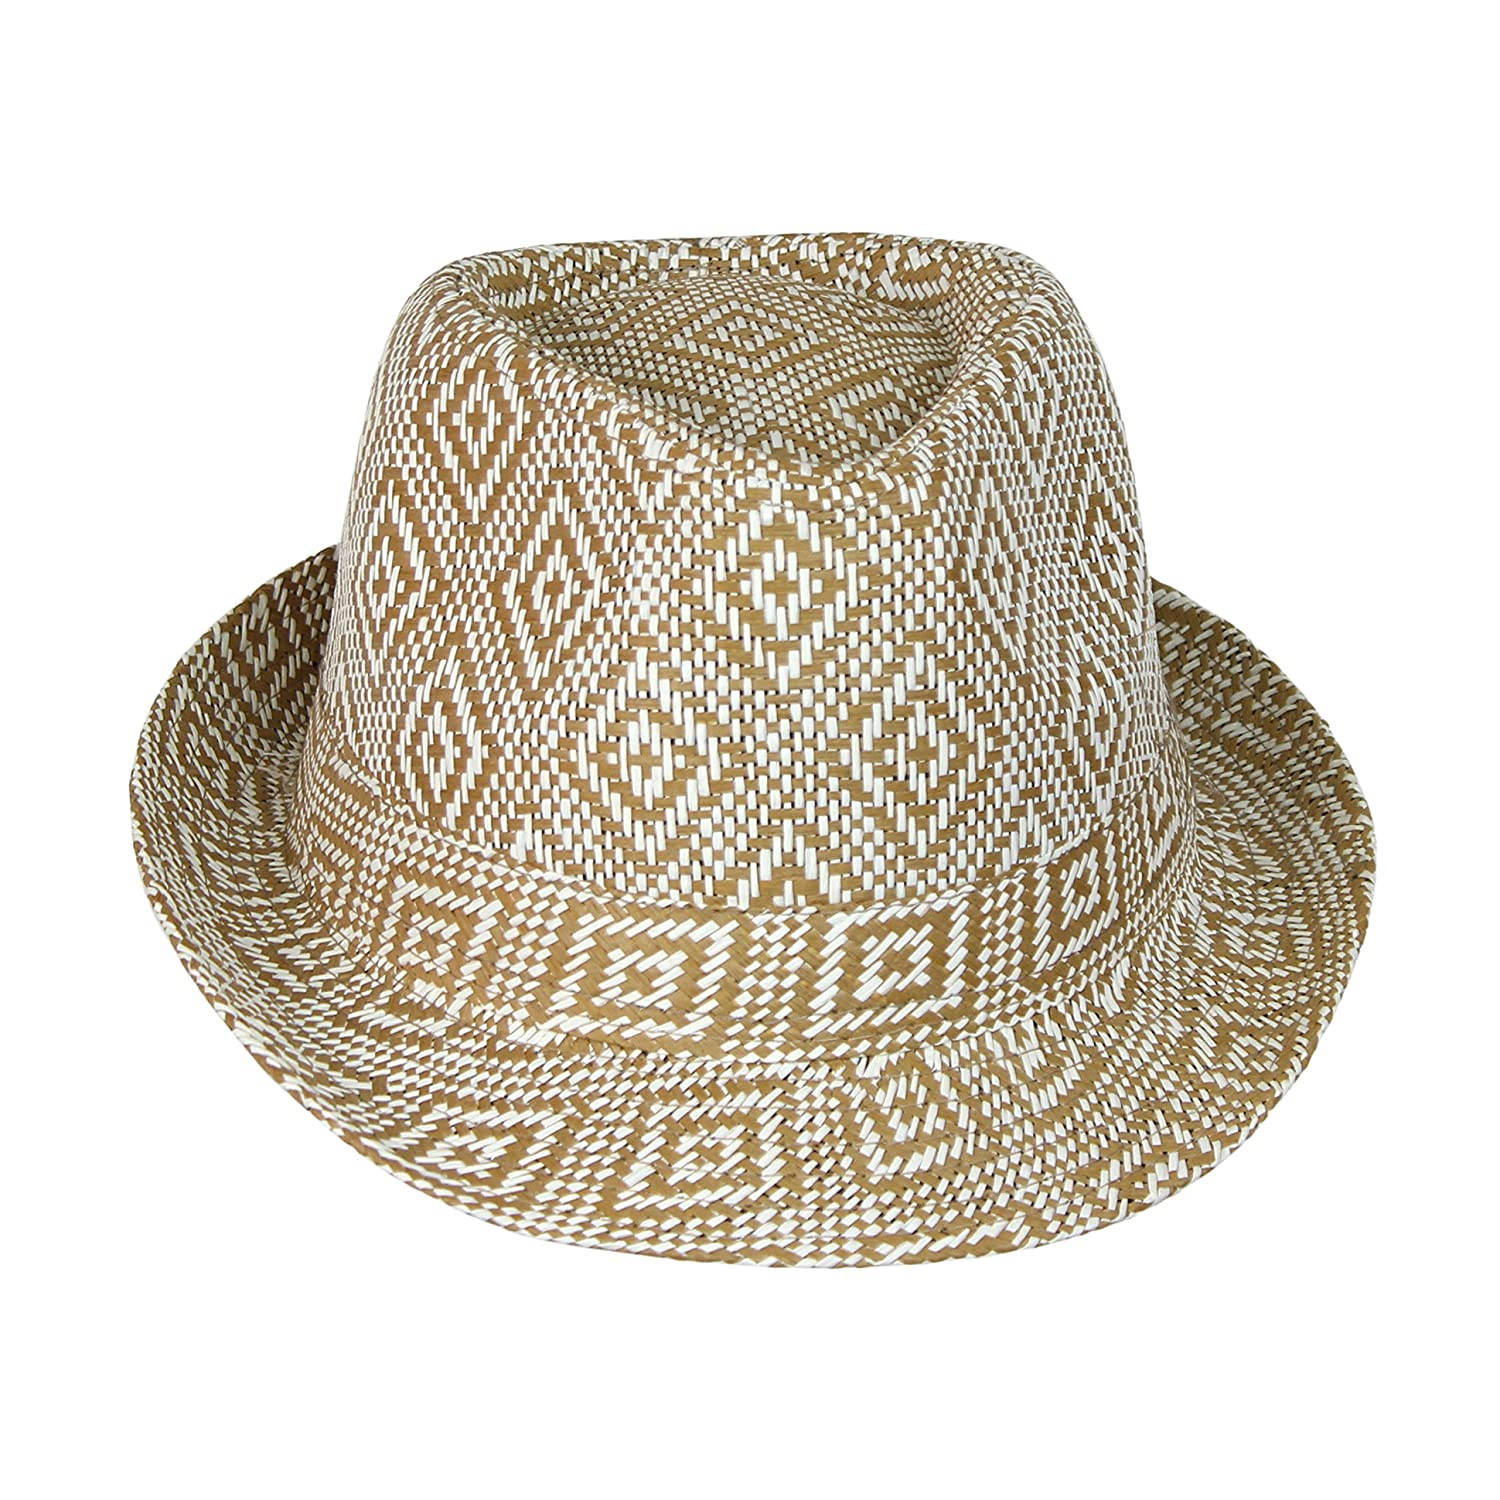 Boho Geometric Design Straw Fedora- Woven Diamond Pattern Trilby Hat Camel  at Amazon Women s Clothing store  b1a73a809594